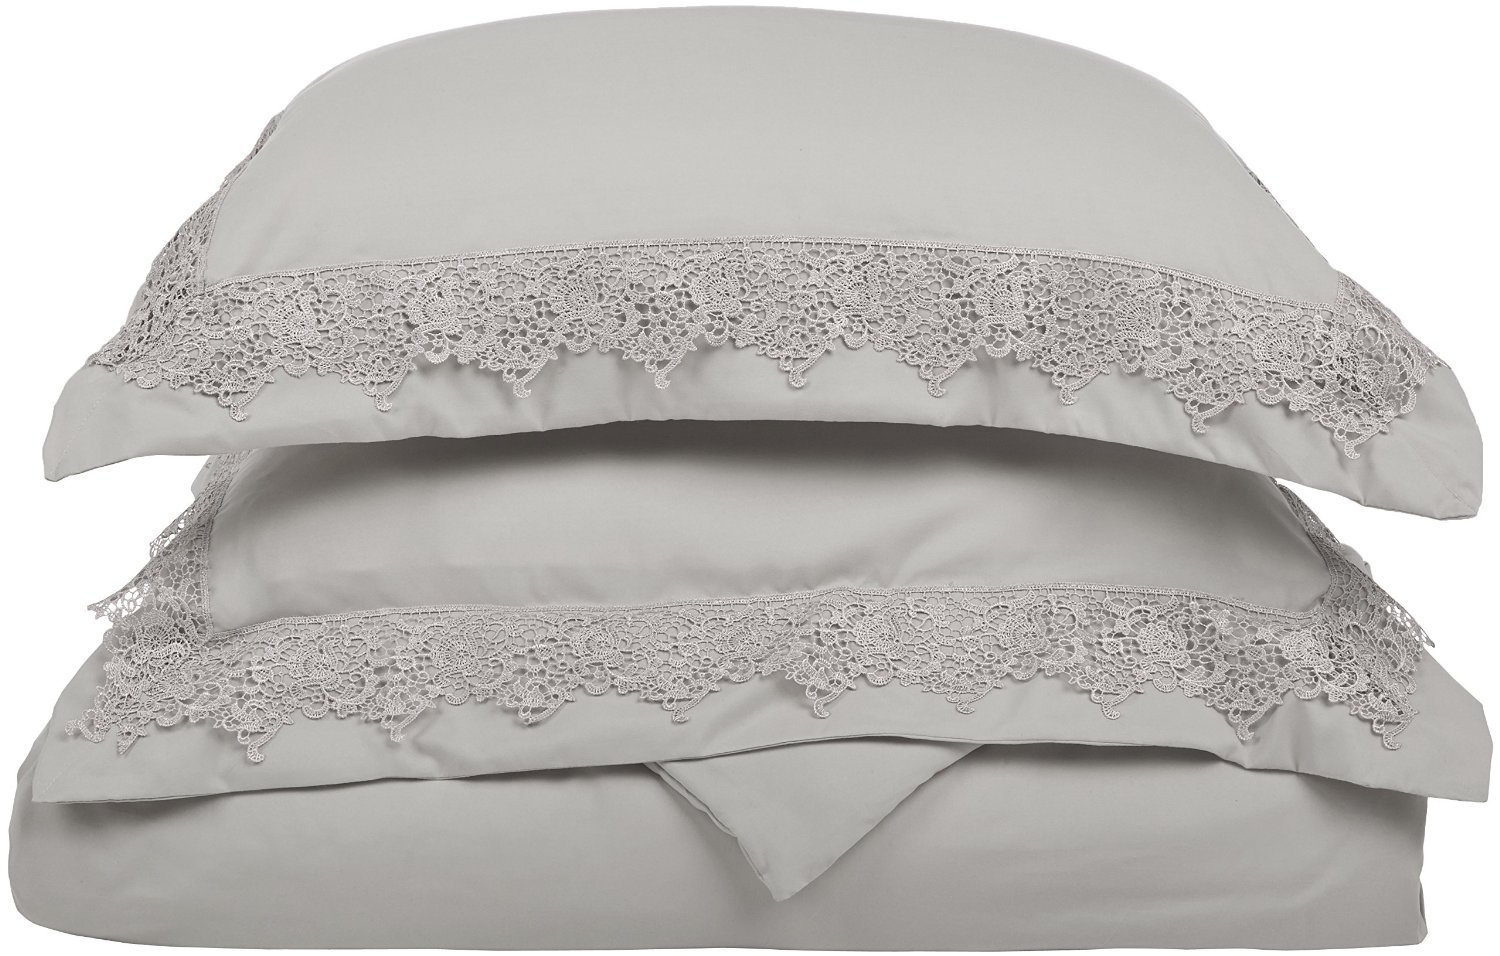 (Twin/Twin XL, Grey/Grey) LUXOR TREASURES Super Soft Light Weight, 100% Brushed Microfiber, Twin/Twin XL, Wrinkle Resistant, Grey Duvet Set with Regal Lace Pillowshams in Gift Box B00QILXBMY Twin/Twin XL|グレー/グレー グレー/グレー Twin/Twin XL